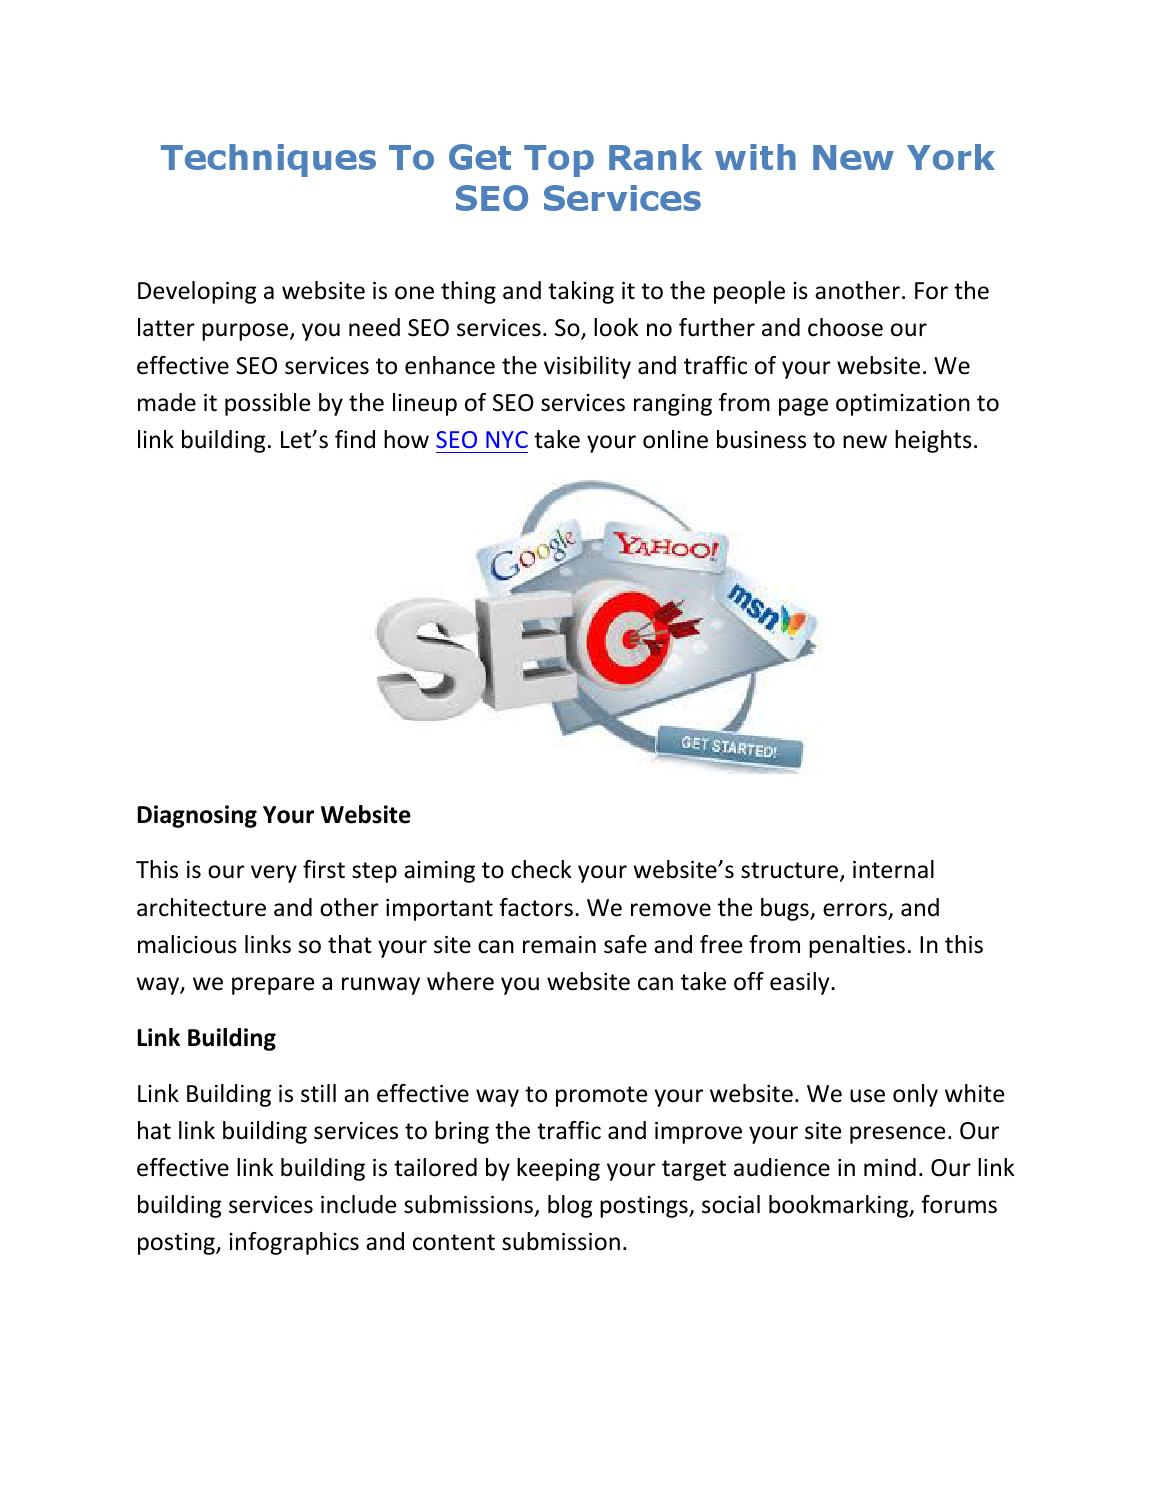 Techniques to get top rank with new york seo services by